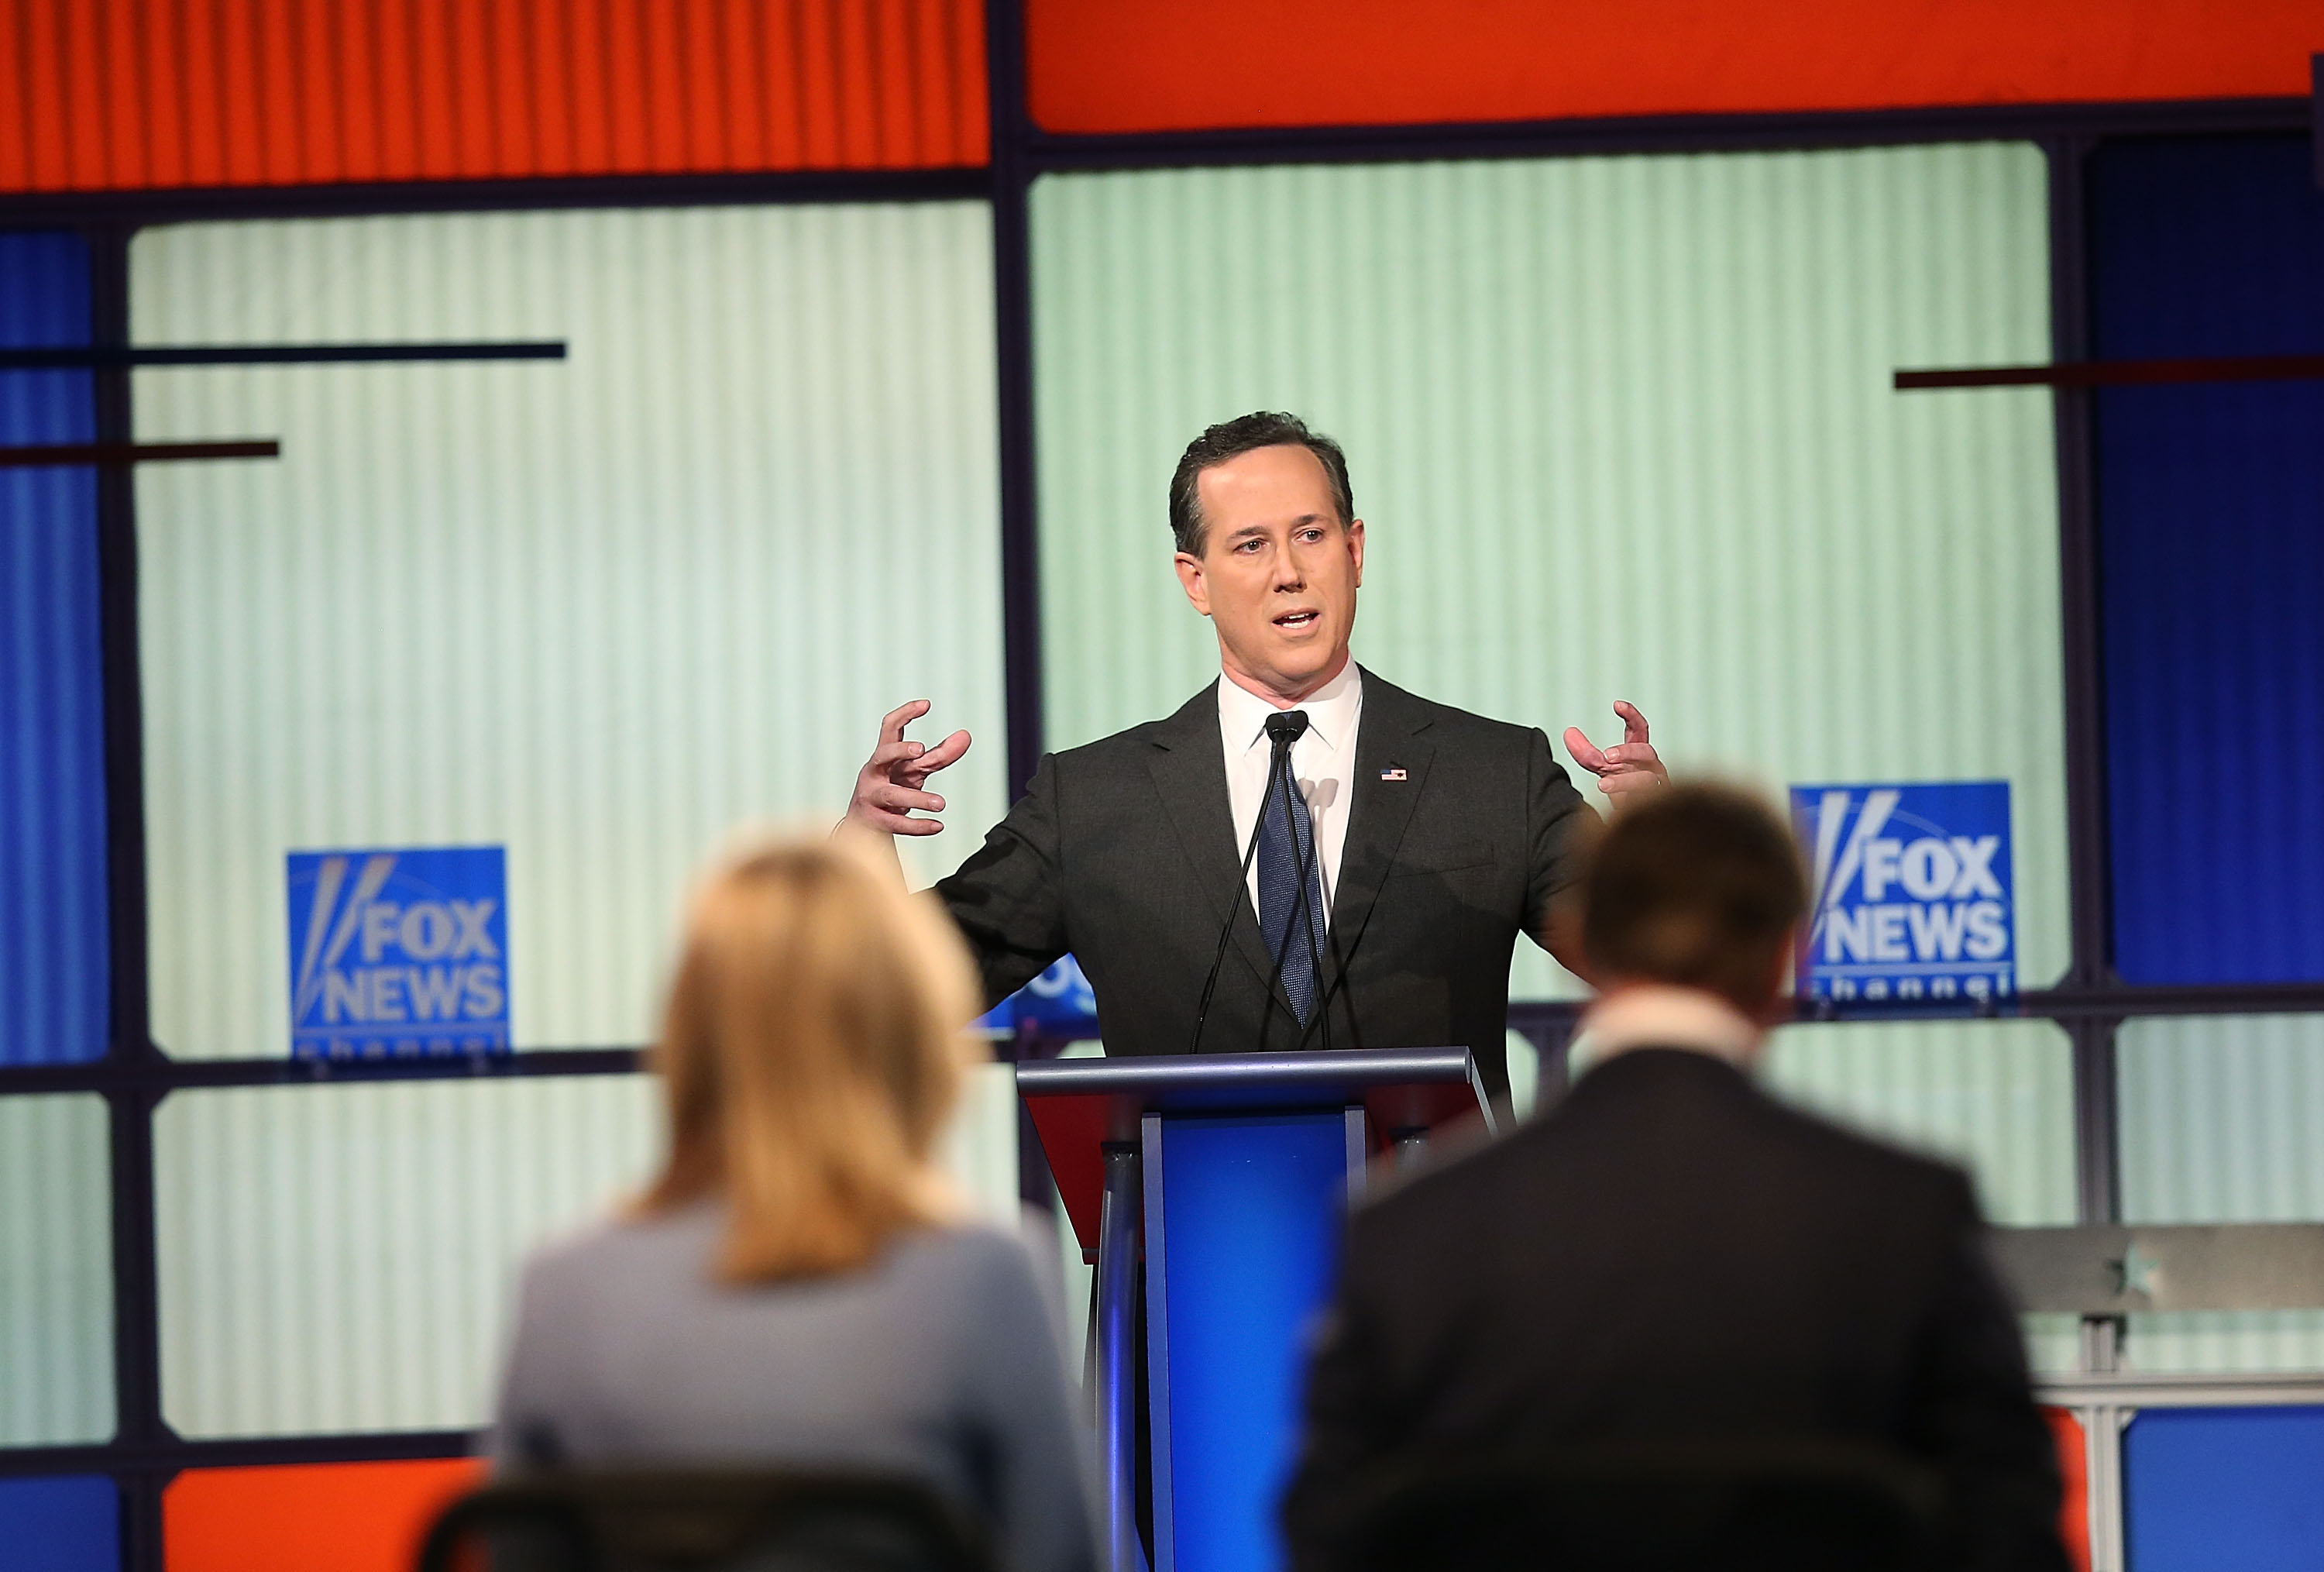 Rick Santorum participates in the Fox News - Google GOP Debate January 28, 2016 at the Iowa Events Center in Des Moines, Iowa. Residents of Iowa will vote for the Republican nominee at the caucuses on February 1.